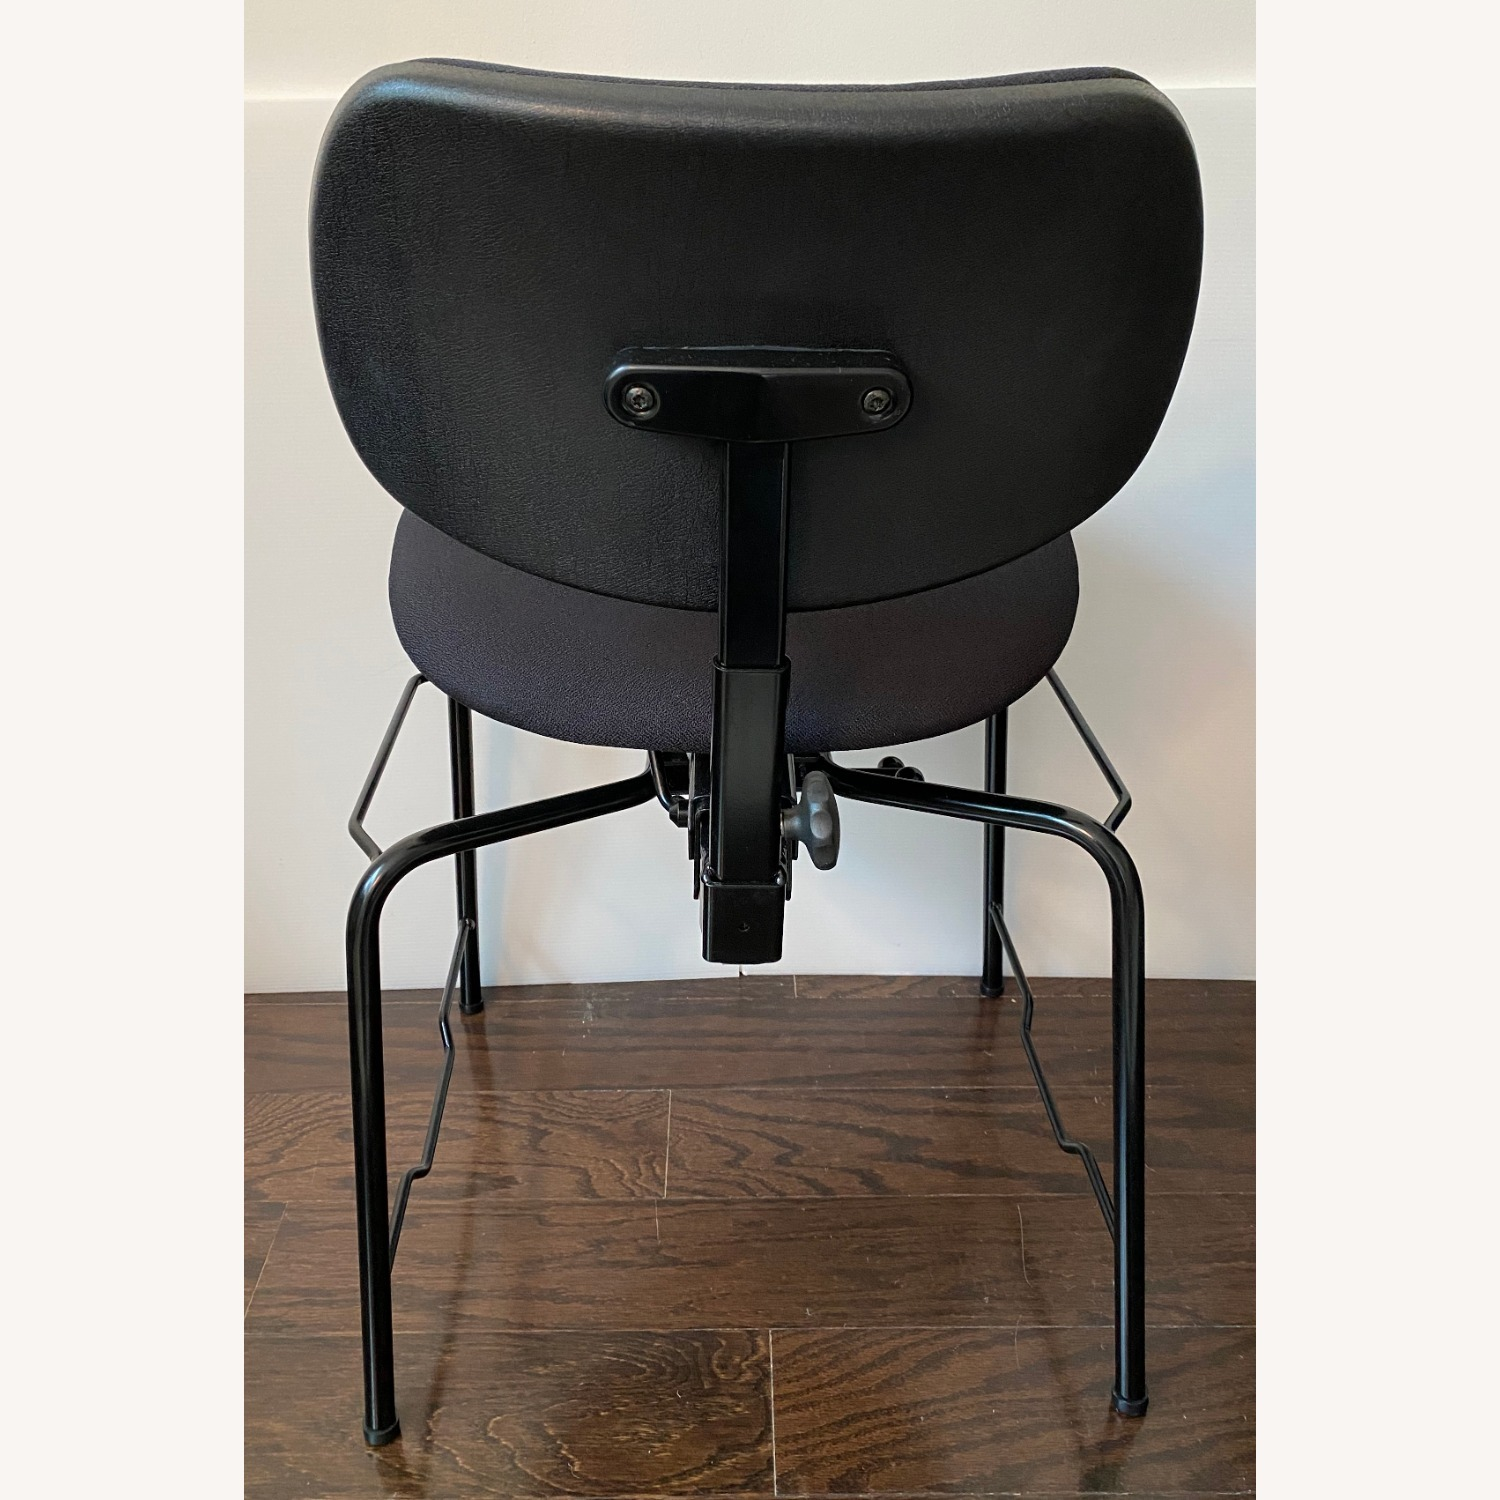 "Wilde + Spieth ""Orchestra"" Chair Black - image-11"